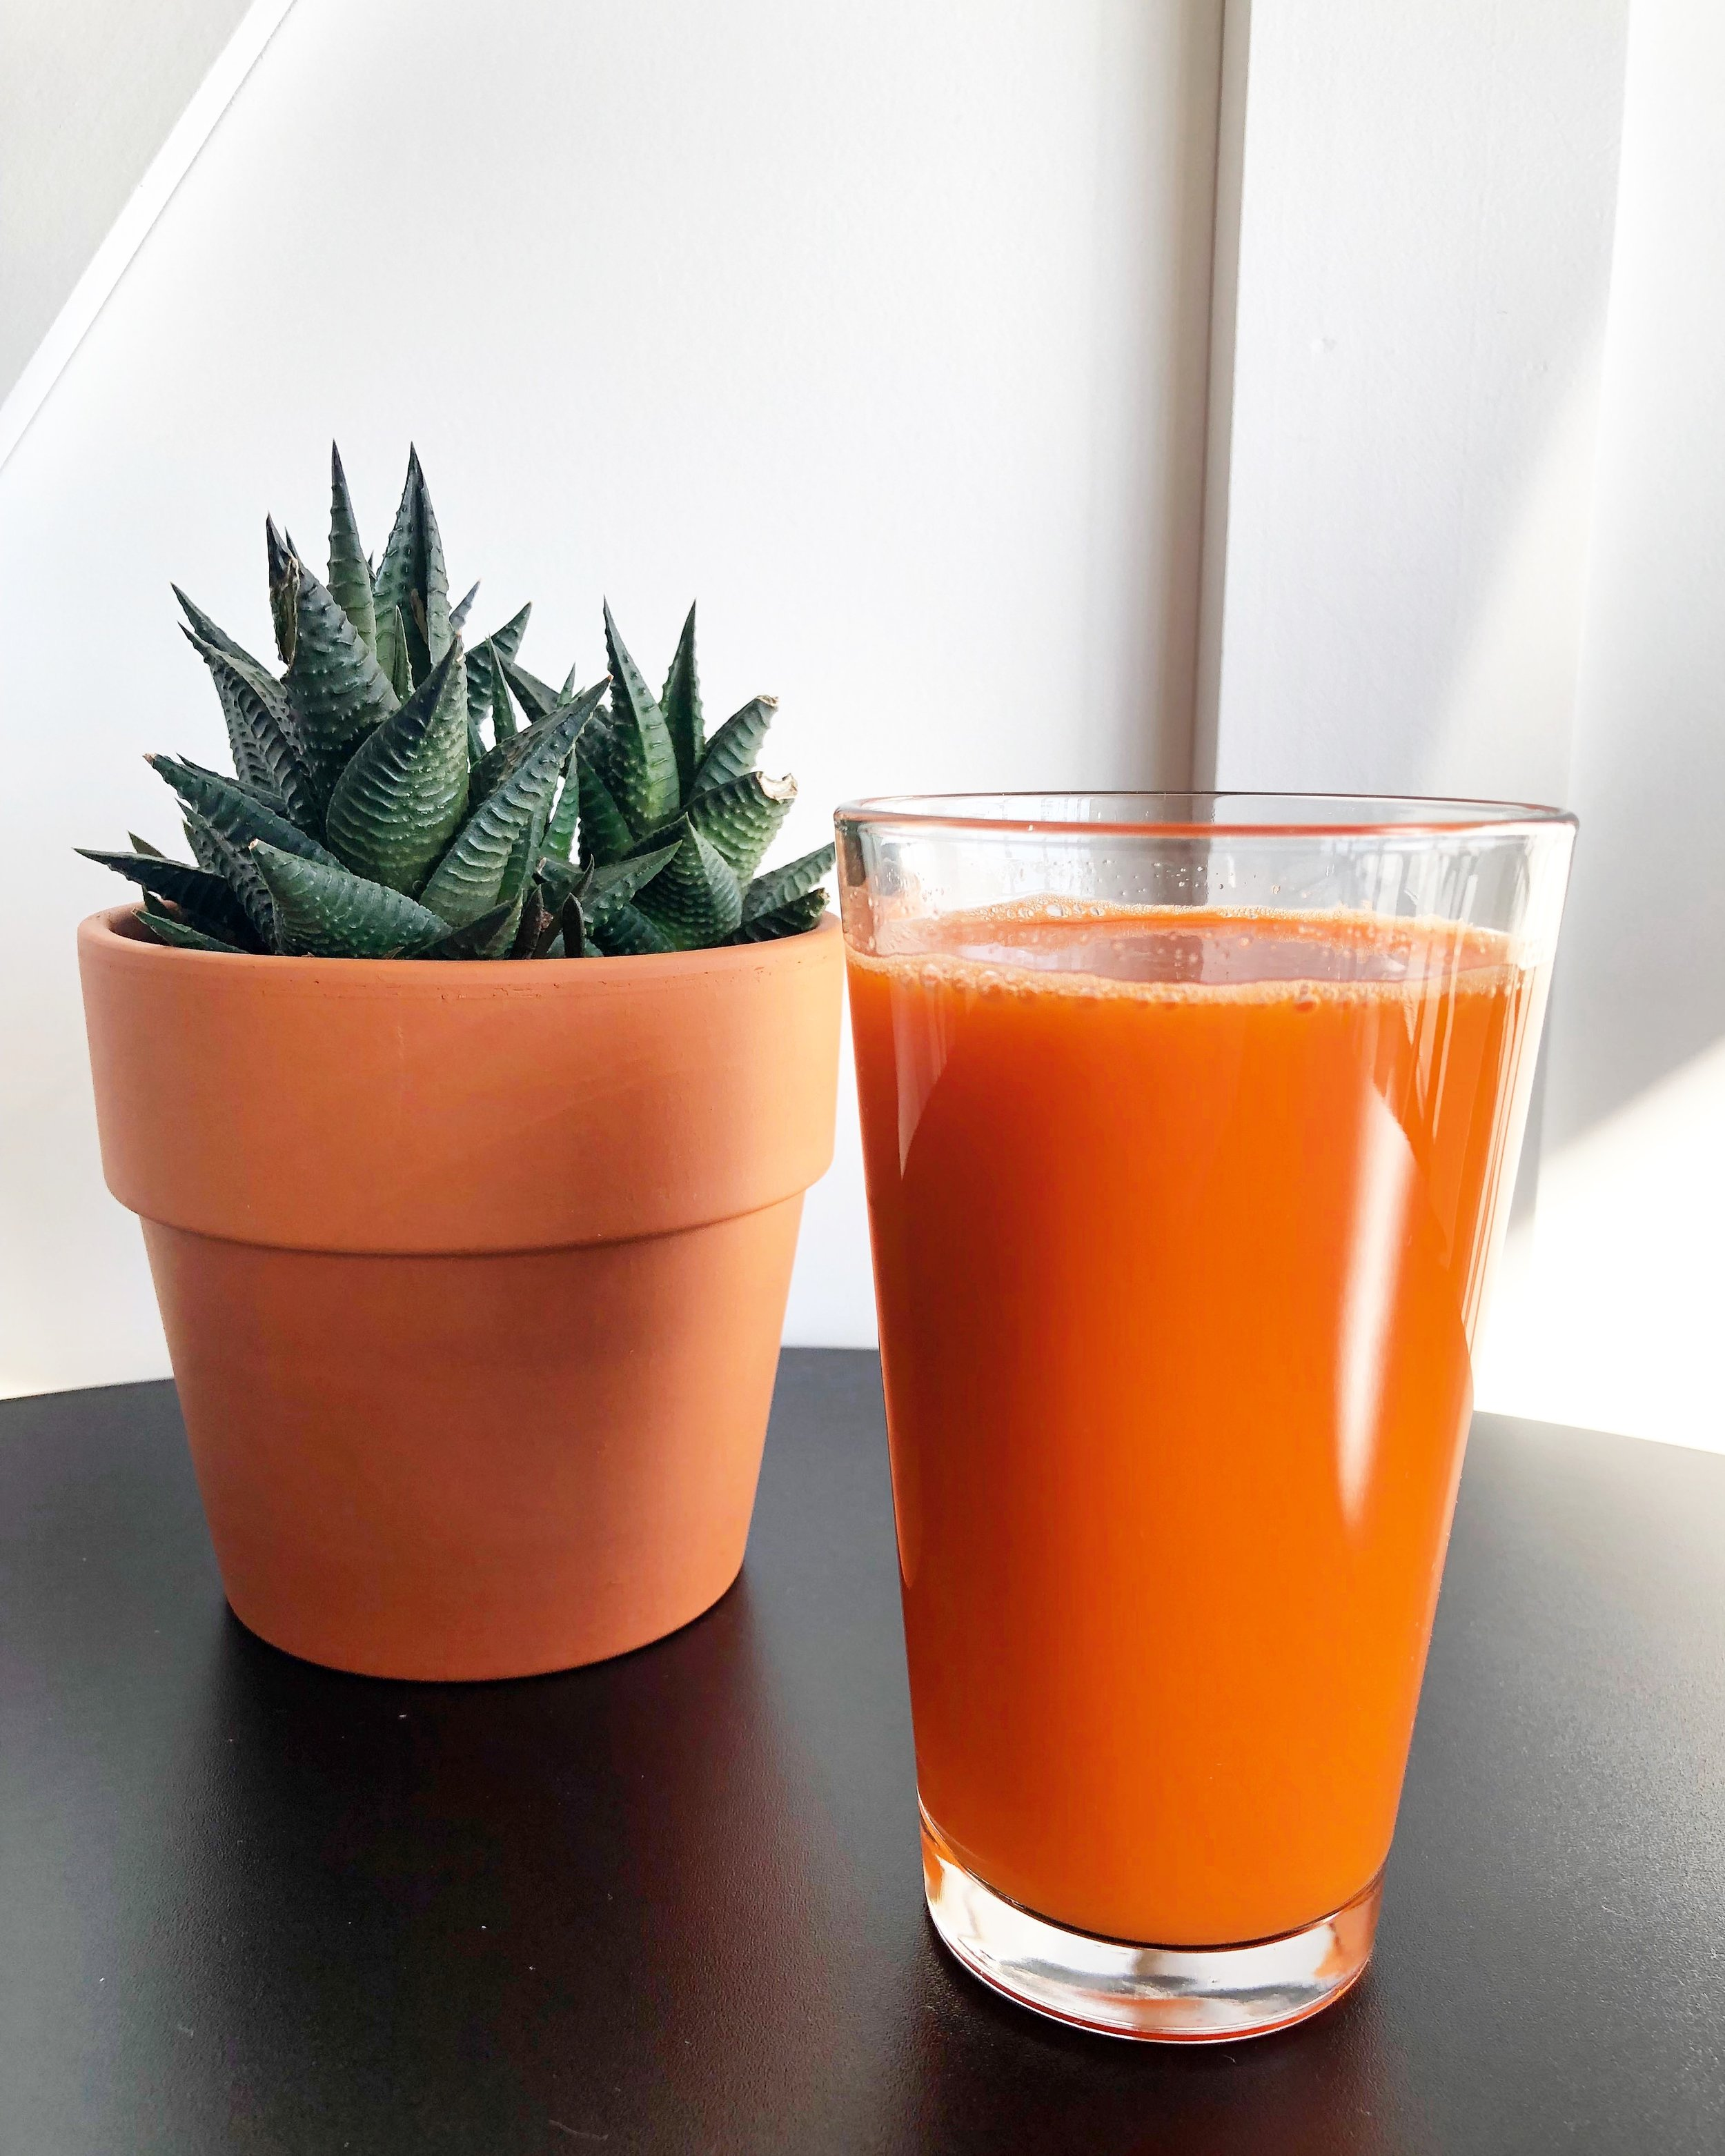 The Wonders of Carrots - 7 Benefits of Carrot Juice